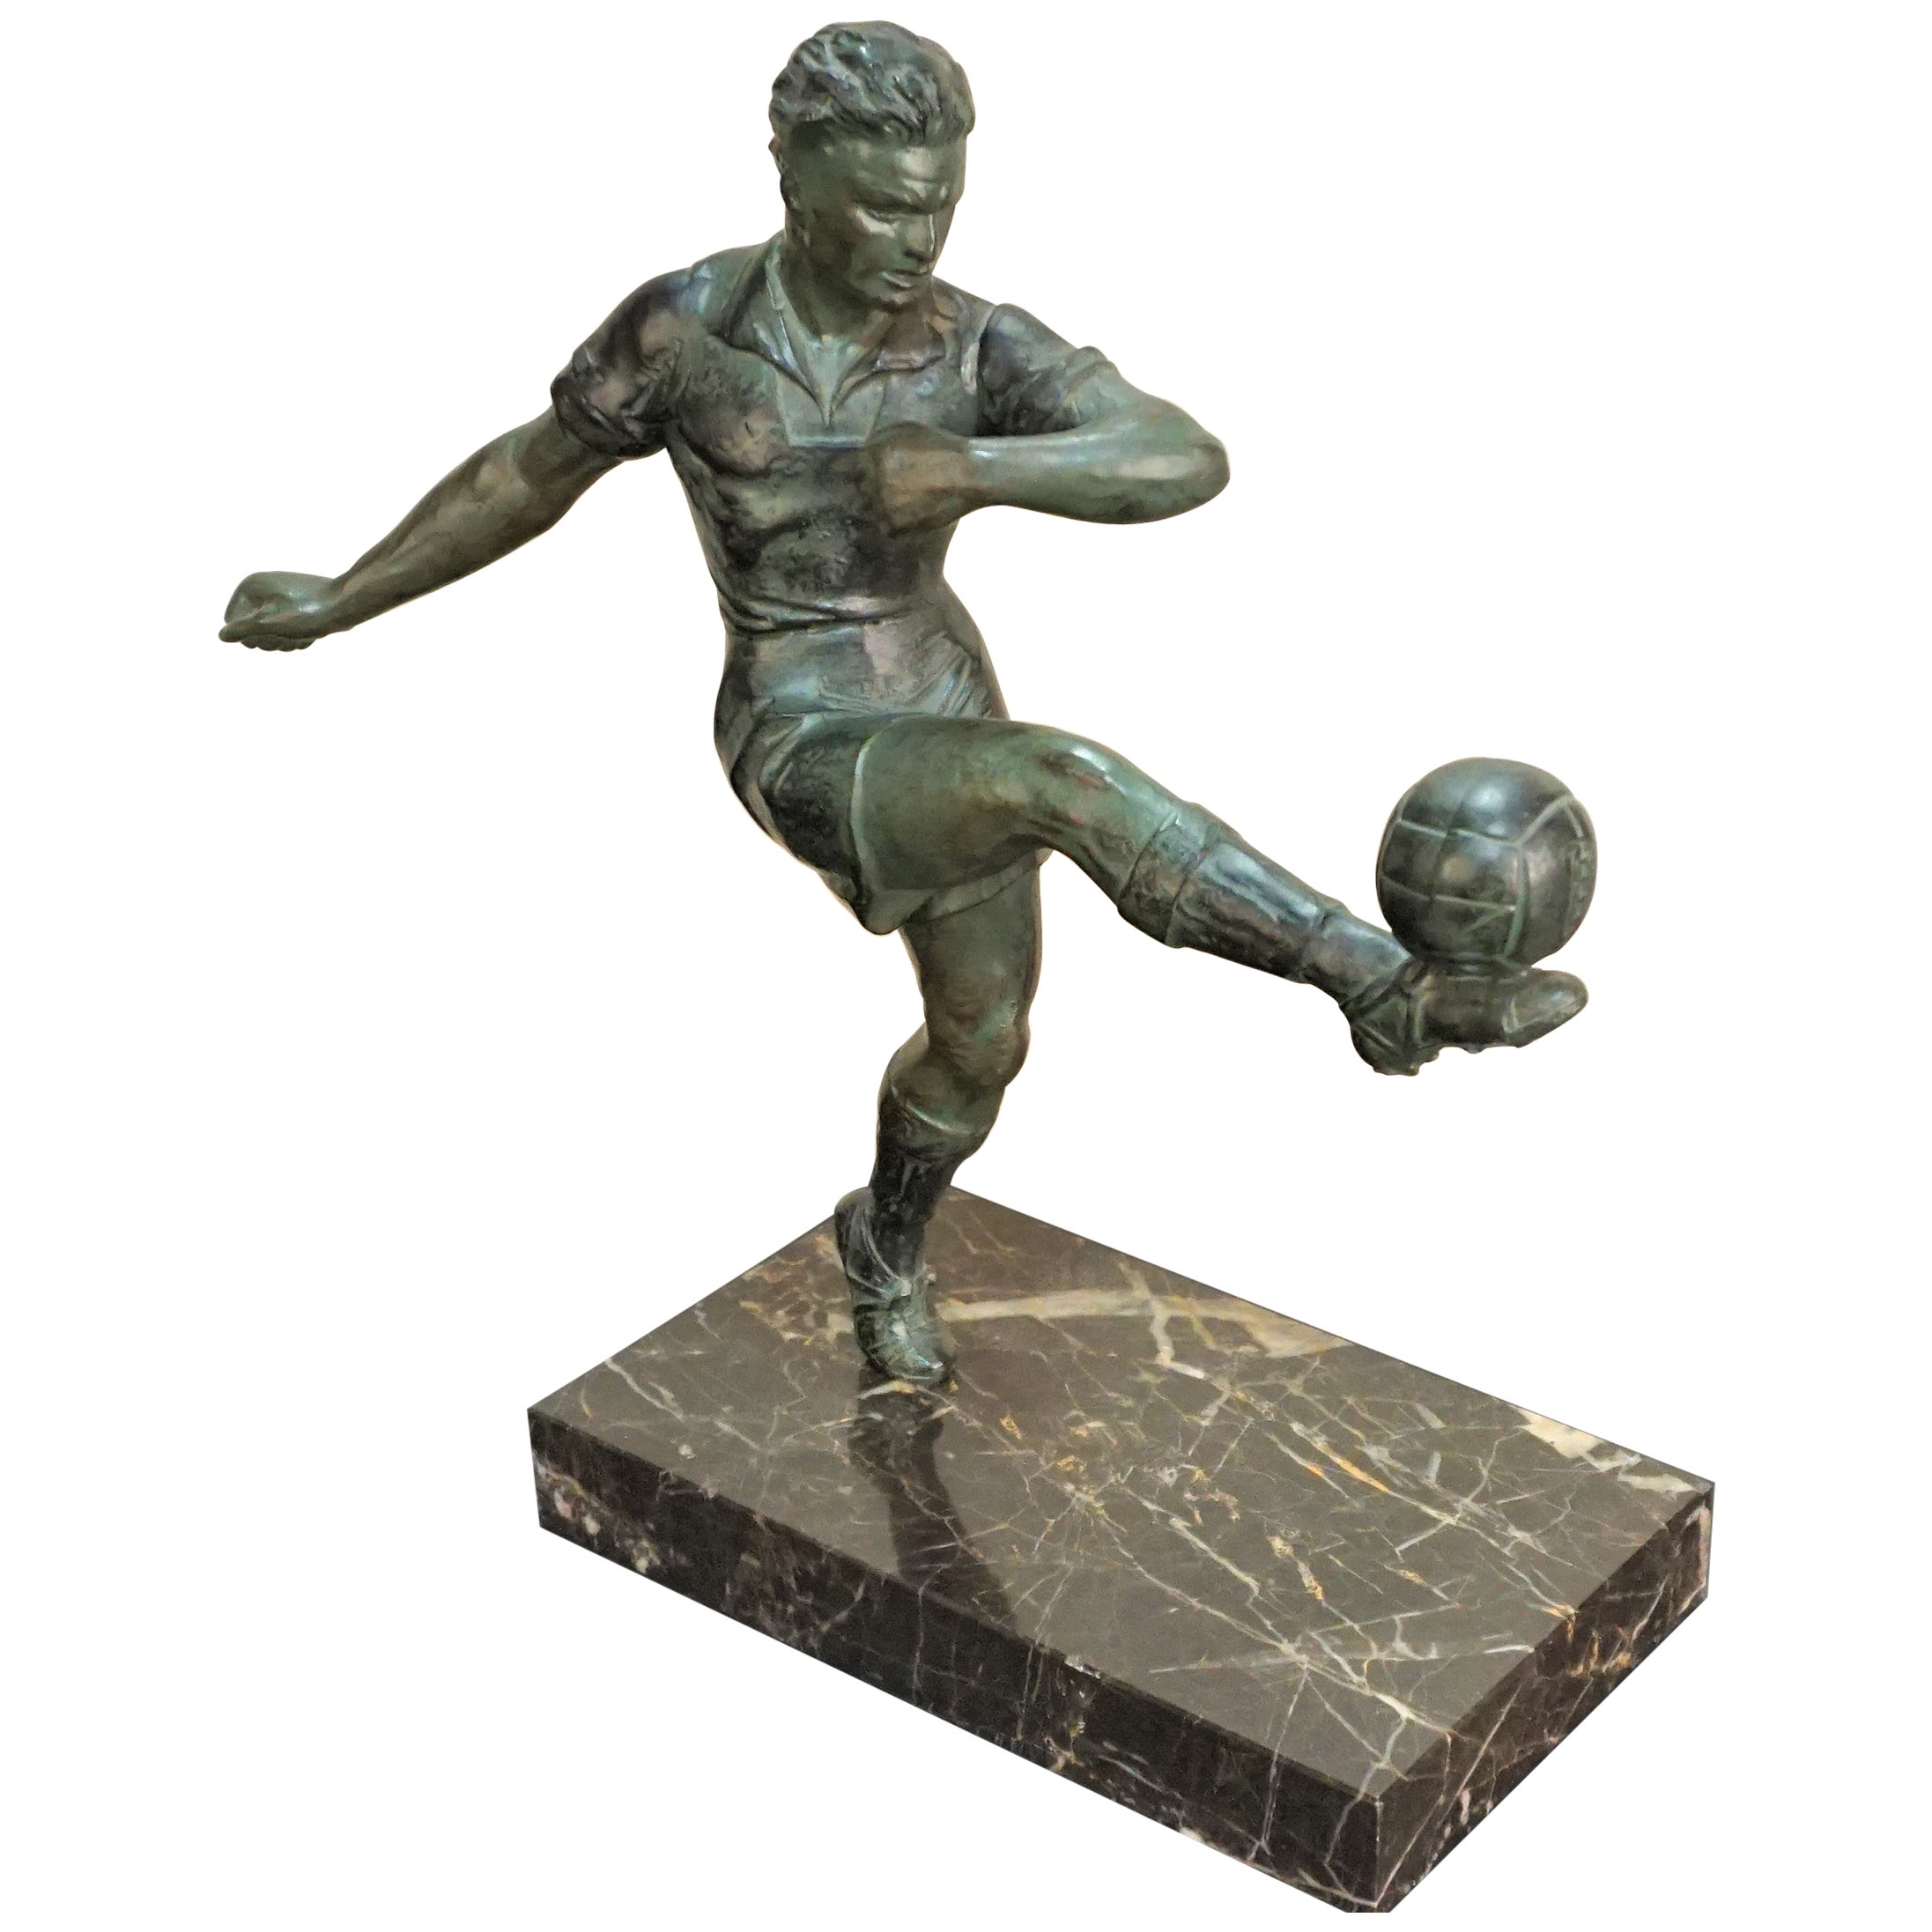 French 1930s Art Deco Soccer or Football Player Sculpture